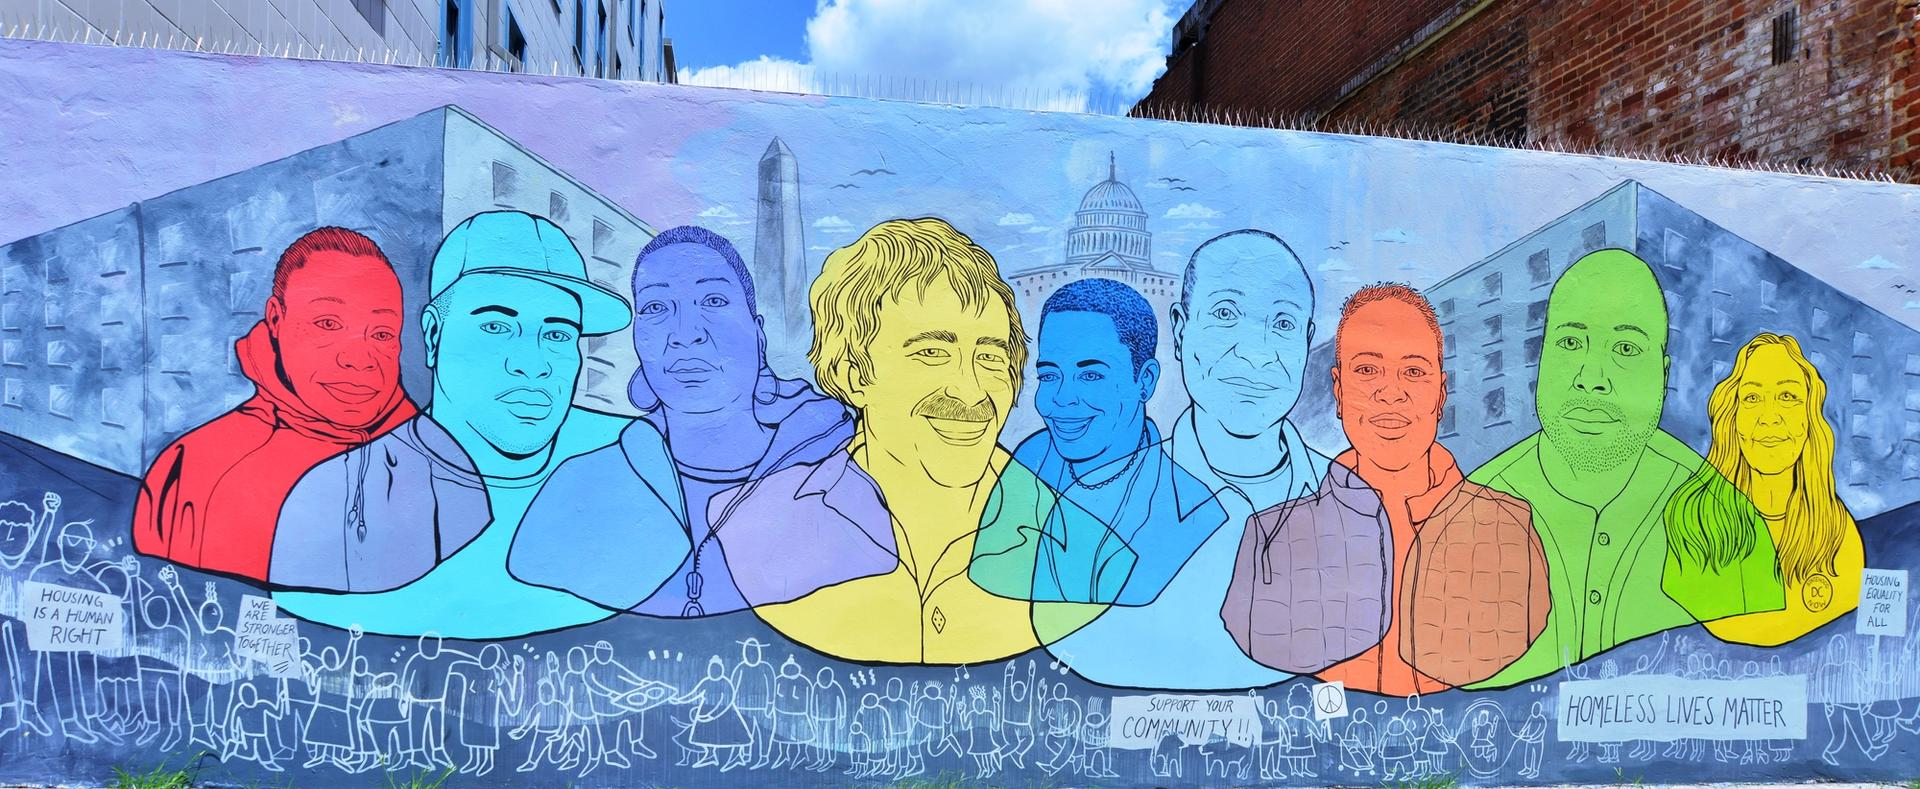 The DC Commission on the Arts and Humanities  annually awards millions of dollars to individual artists and arts organisations across disciplines, including public murals for the city © Rose Jaffe, courtesy of MuralsDC